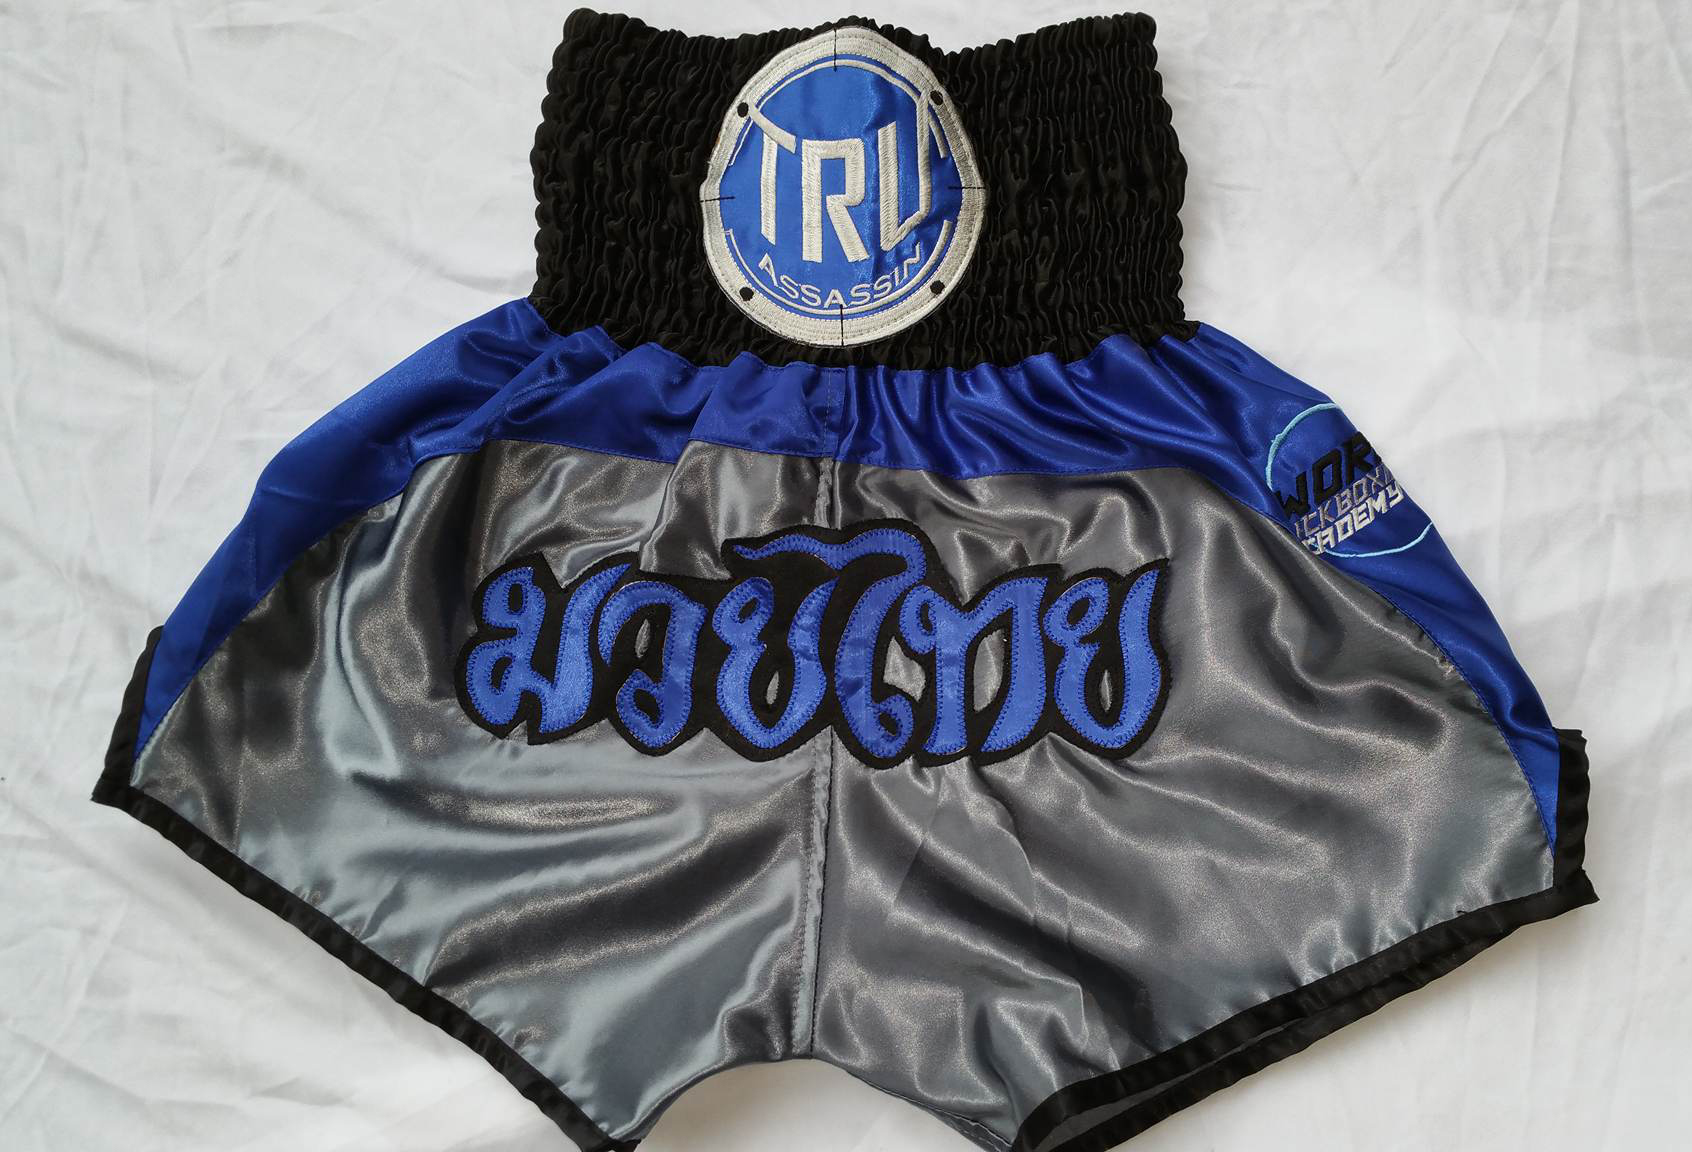 world-kickboxing-shorts